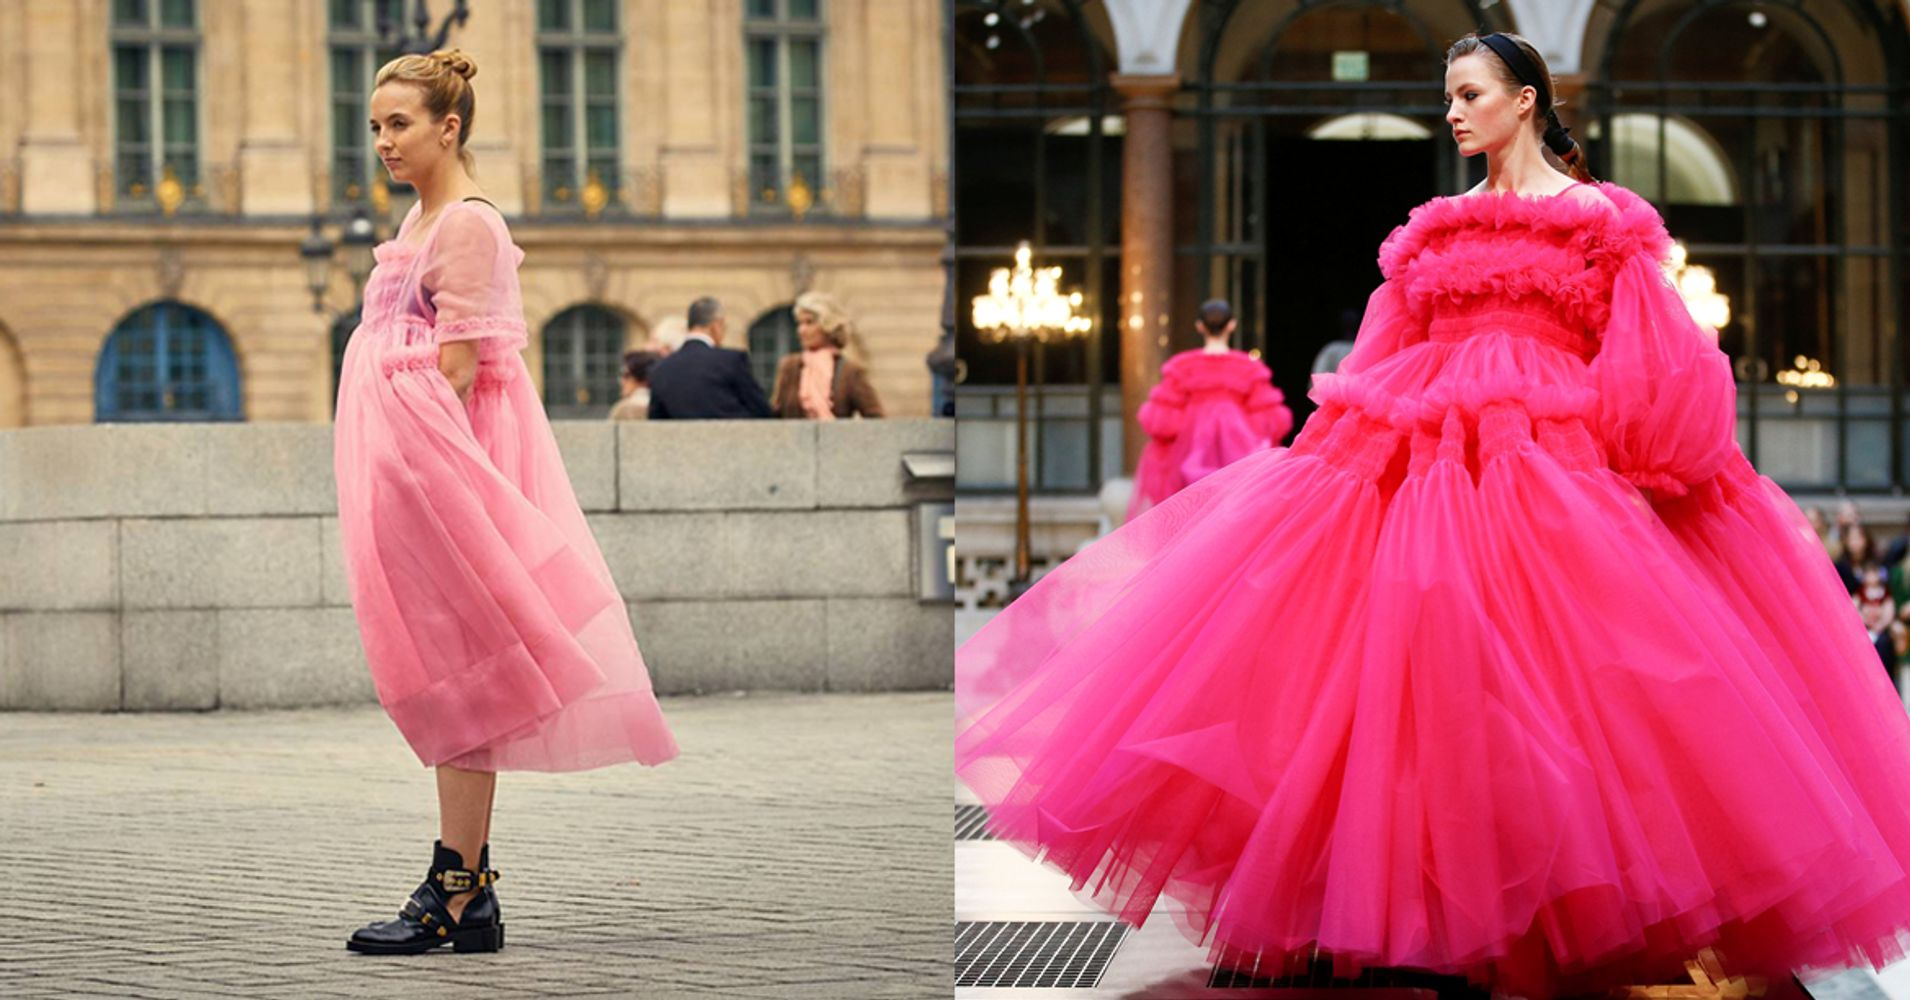 890aaf1438 Killing Eve Tulle Dress Inspiration: How To Get The Molly Goddard Look